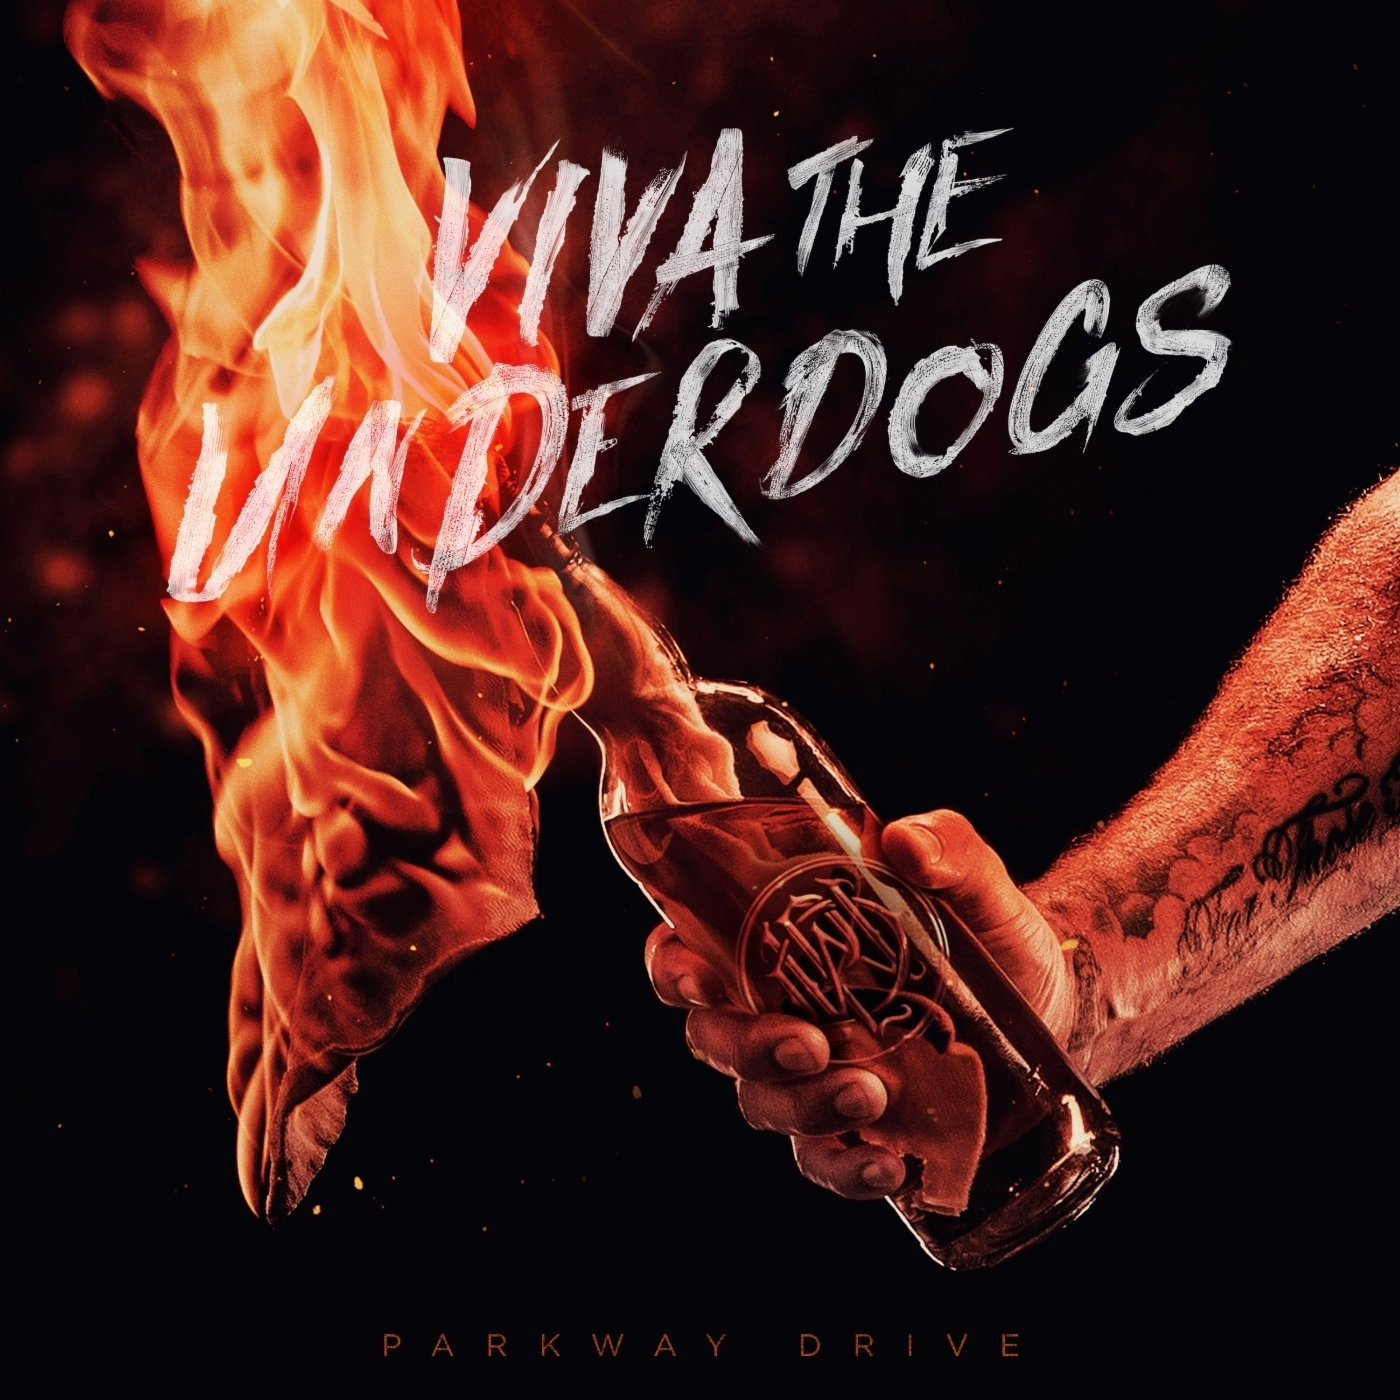 Parkway Drive : Viva The Underdogs